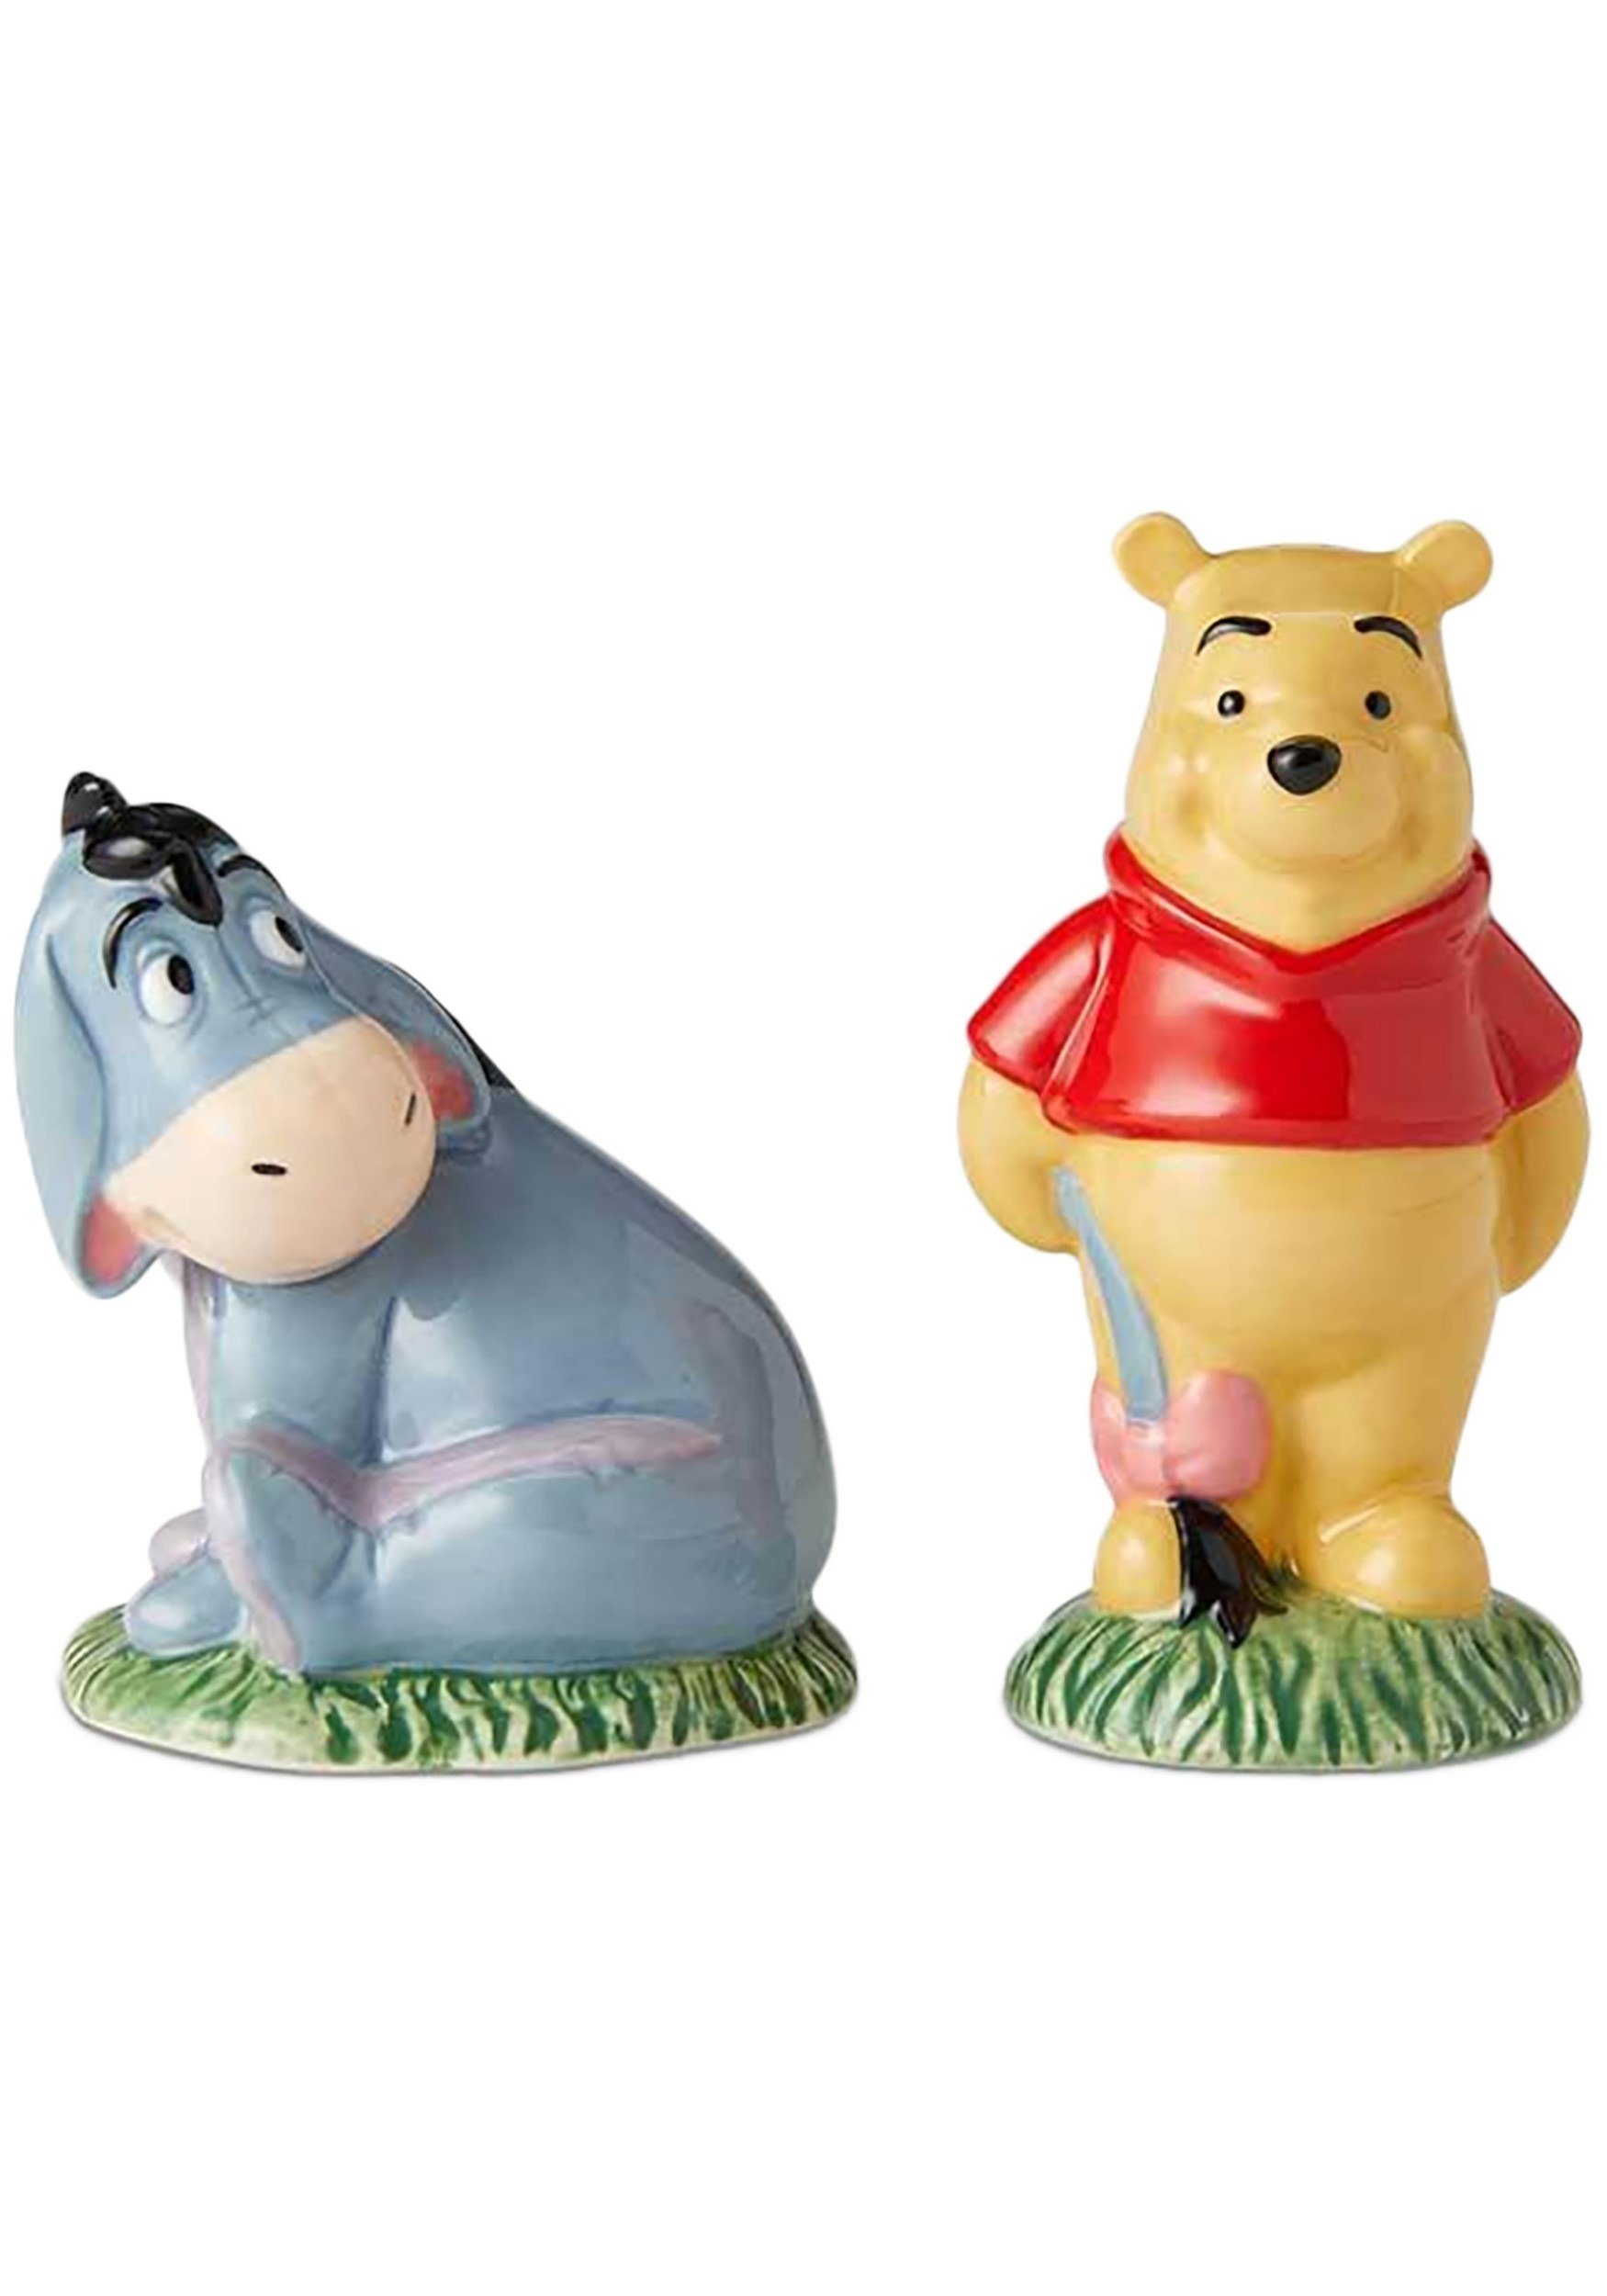 Winnie The Pooh Salt And Pepper Shaker